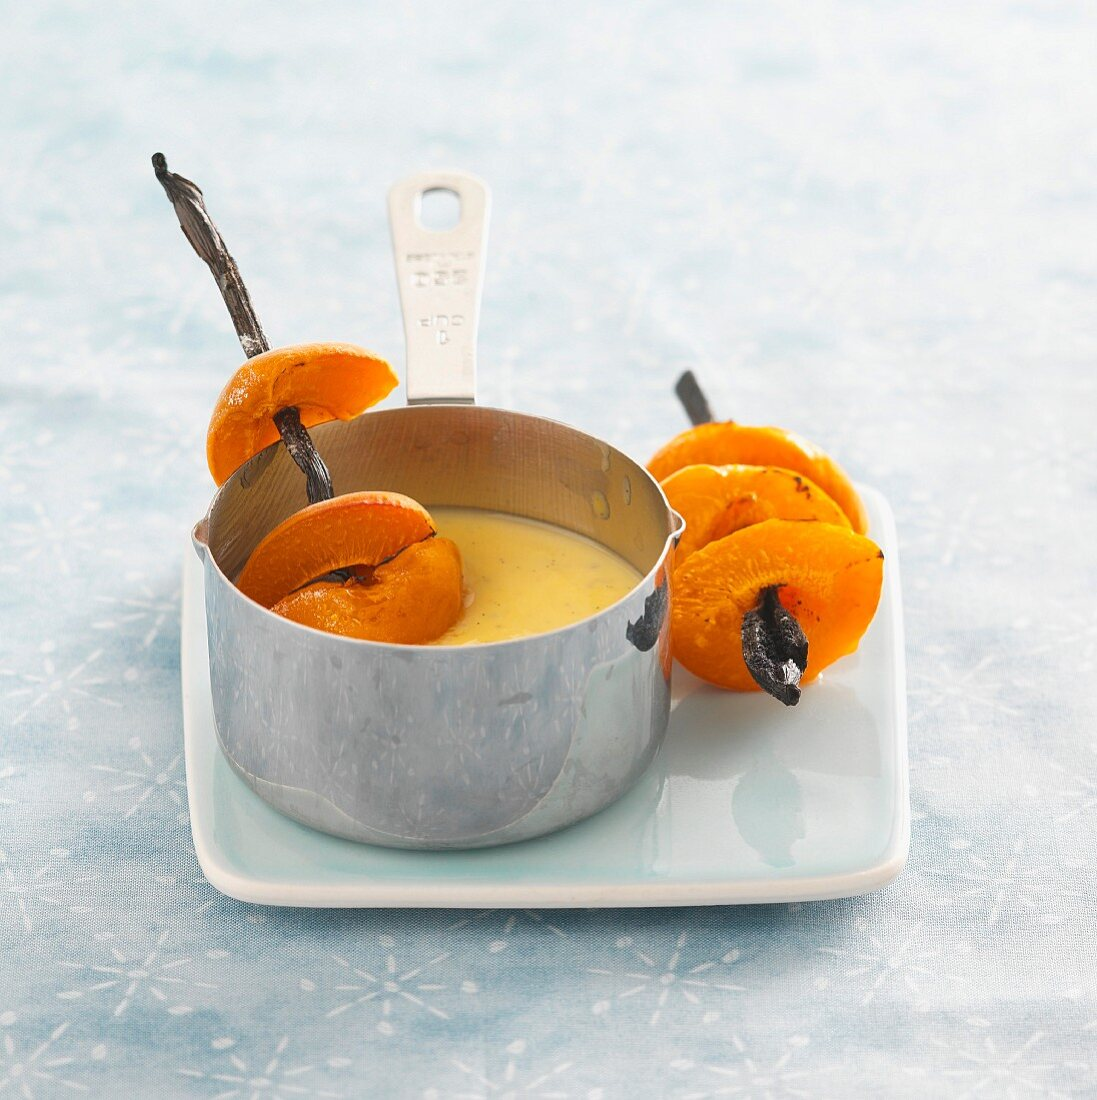 Apricot skewers with vanilla sauce